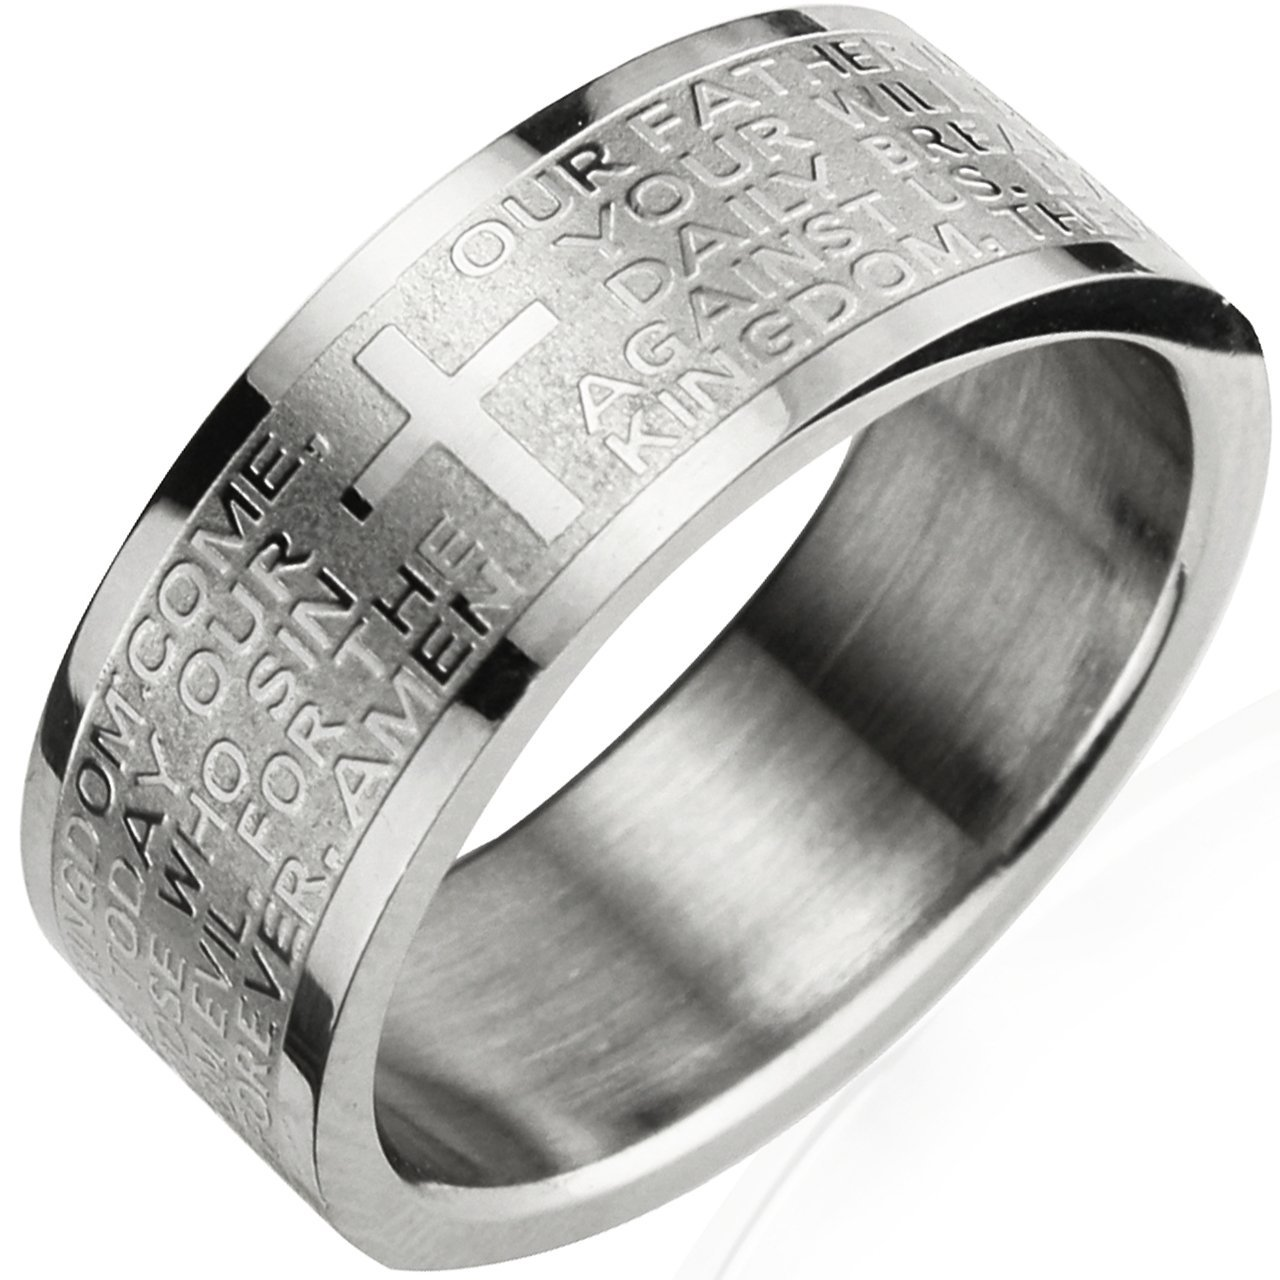 Stainless Steel Wedding Rings Sets 31 Perfect Stainless Steel English Lord